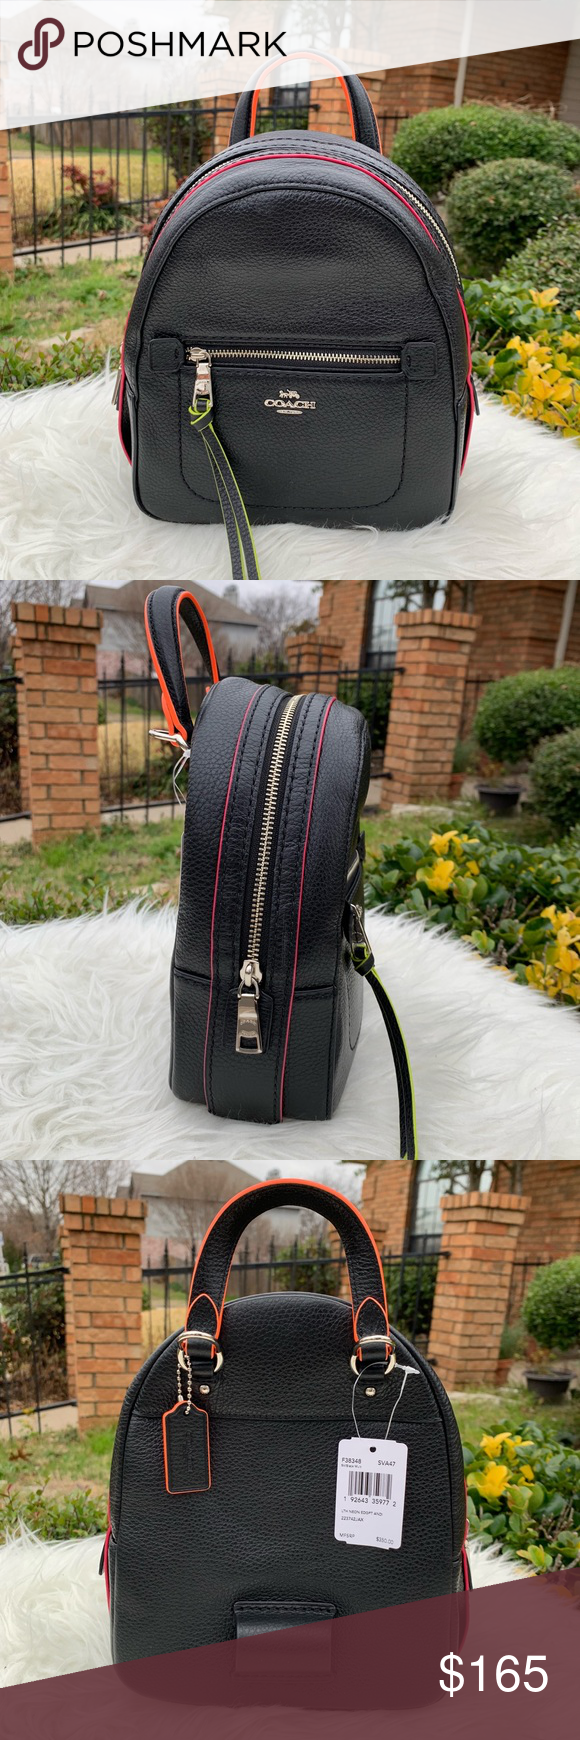 """93bd429c99f5 Coach F38348 Black/neon Andi Backpack Details Refined pebble leather Inside  multifunction pocket Zip-top closure, fabric lining Top handle with 2"""" drop  ..."""